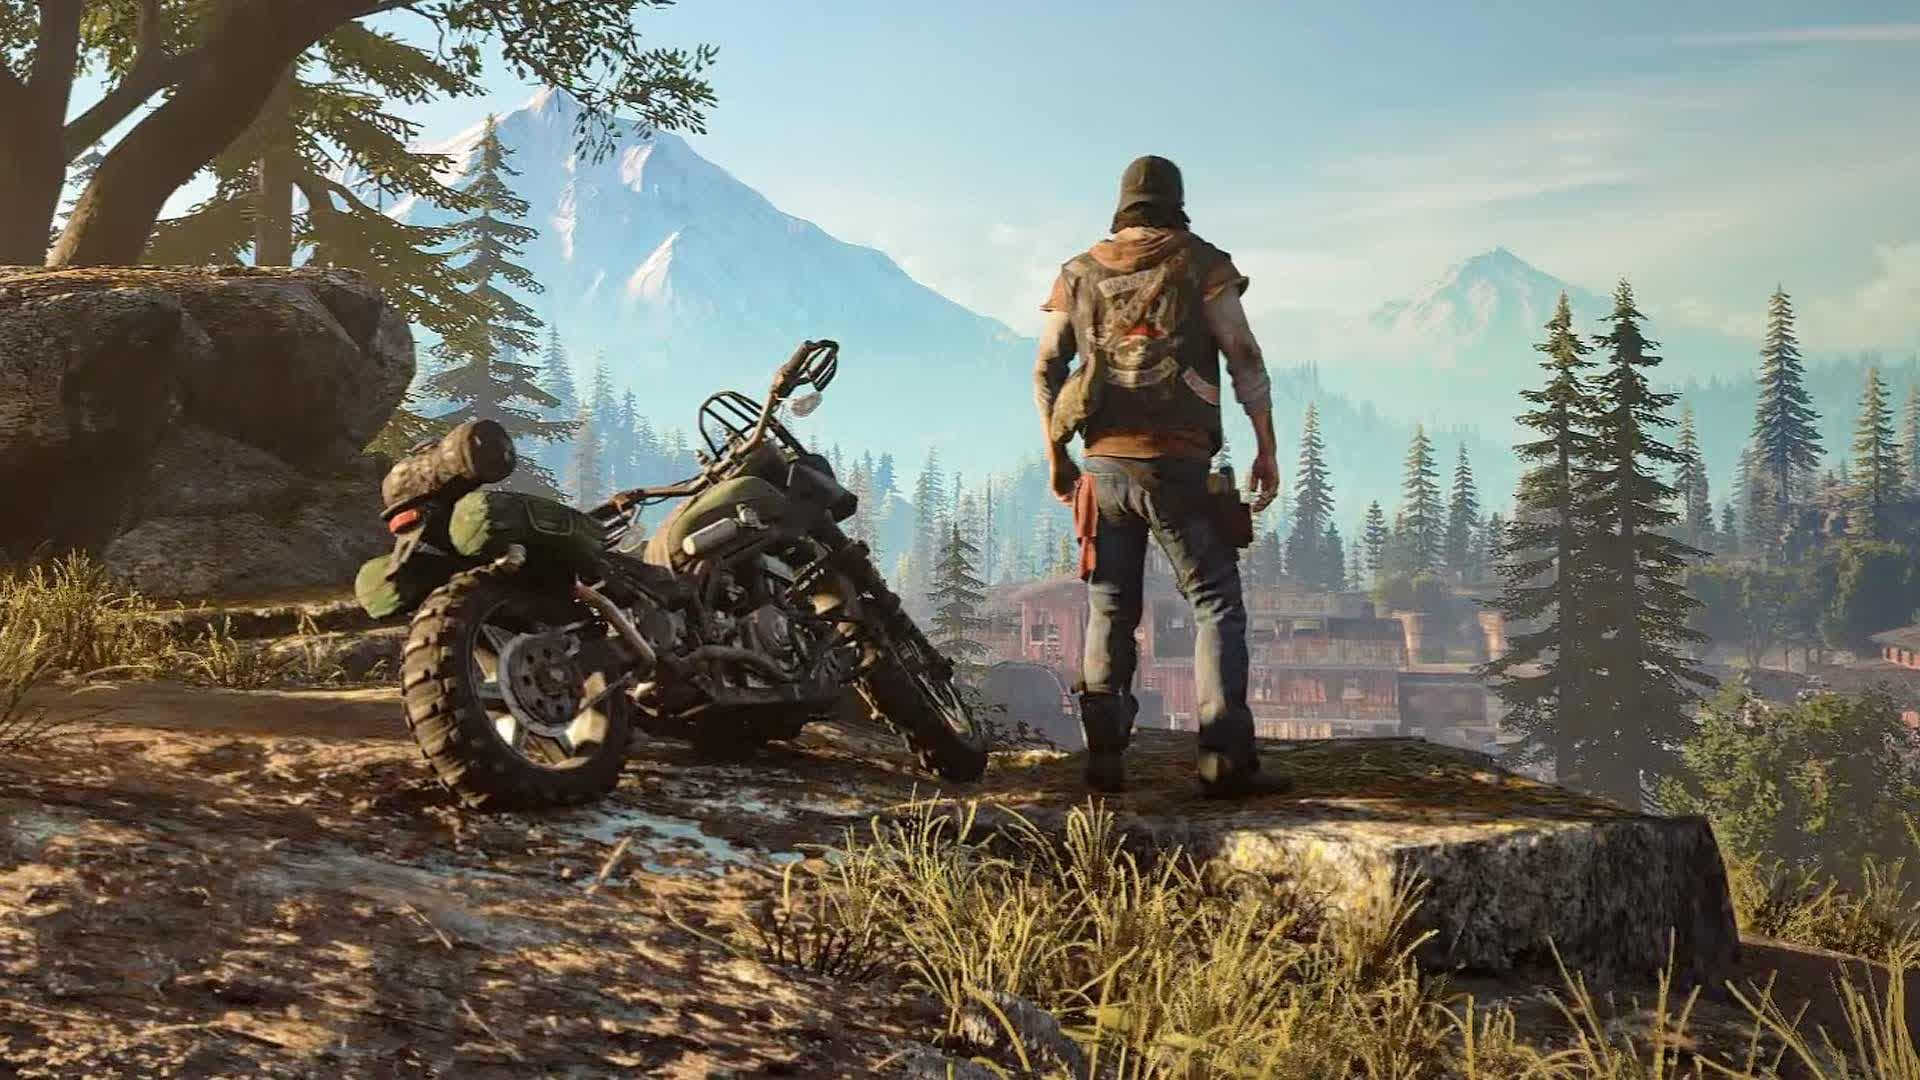 Sony plans to bring more PlayStation exclusives to PC, including Days Gone